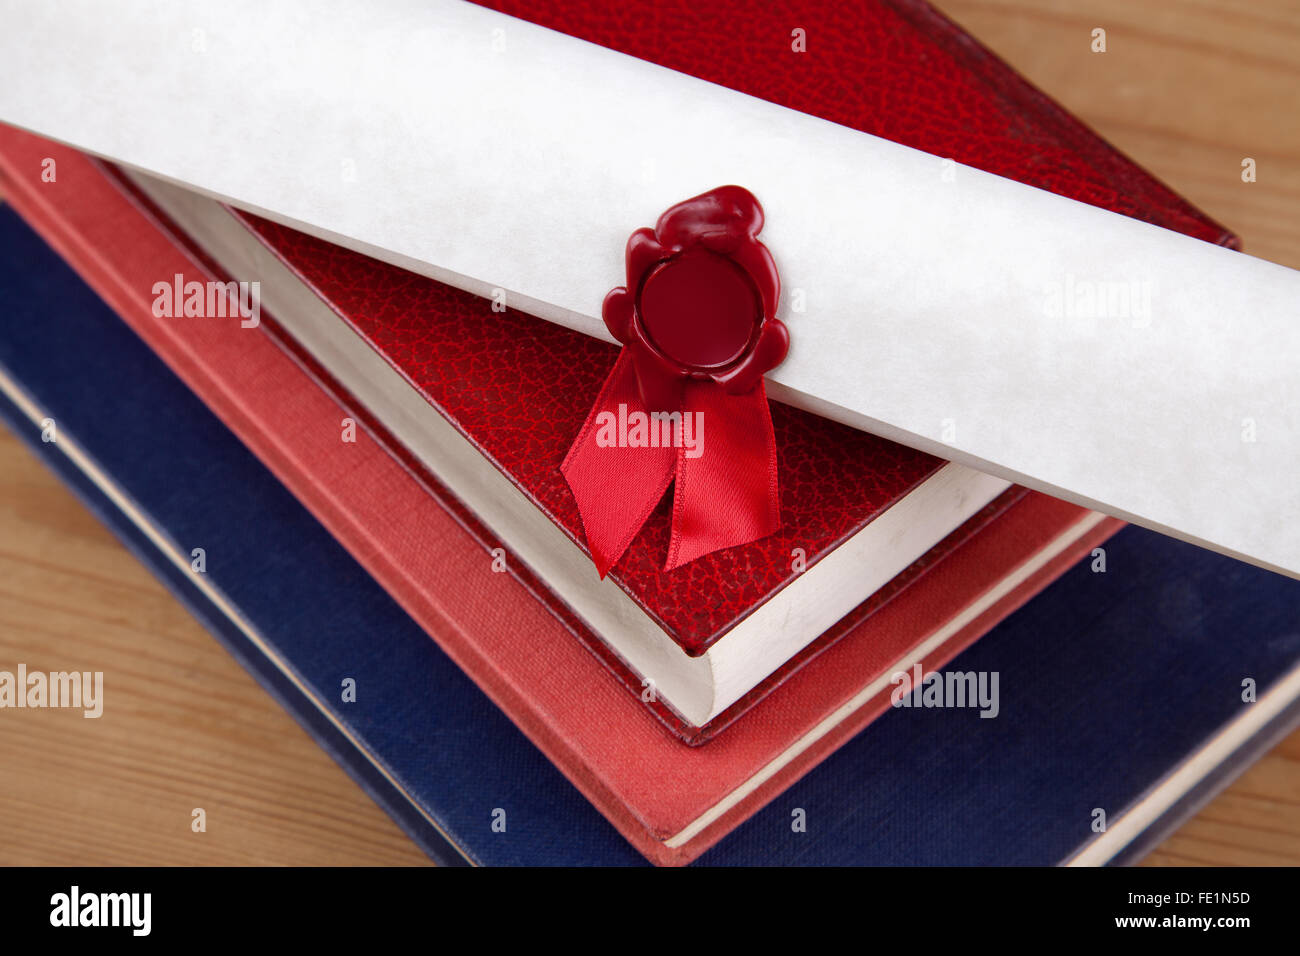 A wax sealed certificate on top of some old books, blank seal with copy space. - Stock Image